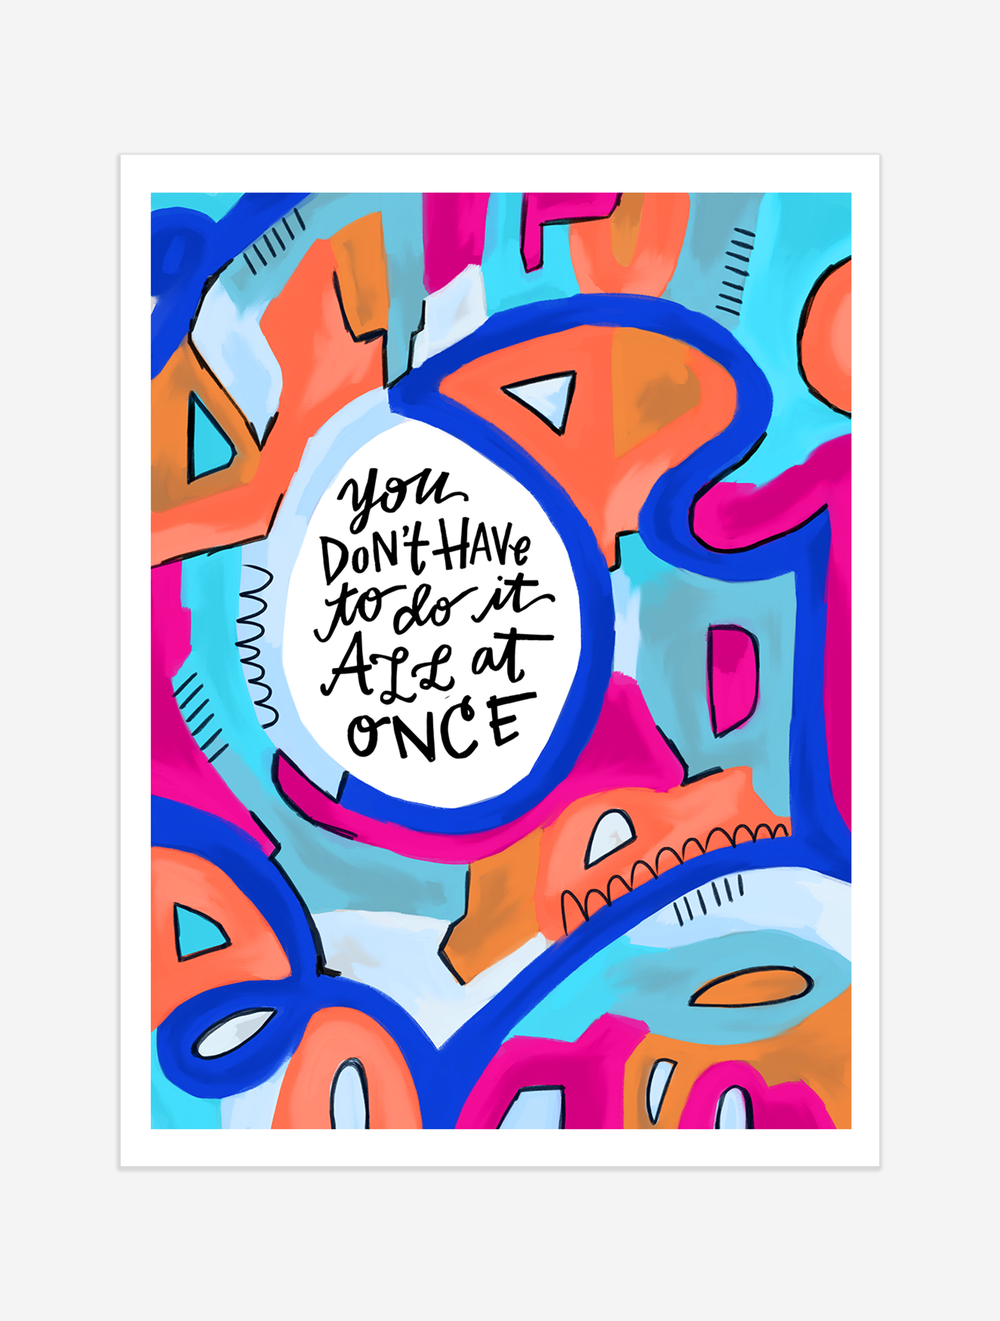 A friendly reminder that you can do anything, but you can't do everything. $25 giclee print available at the Made Vibrant Art Shop.